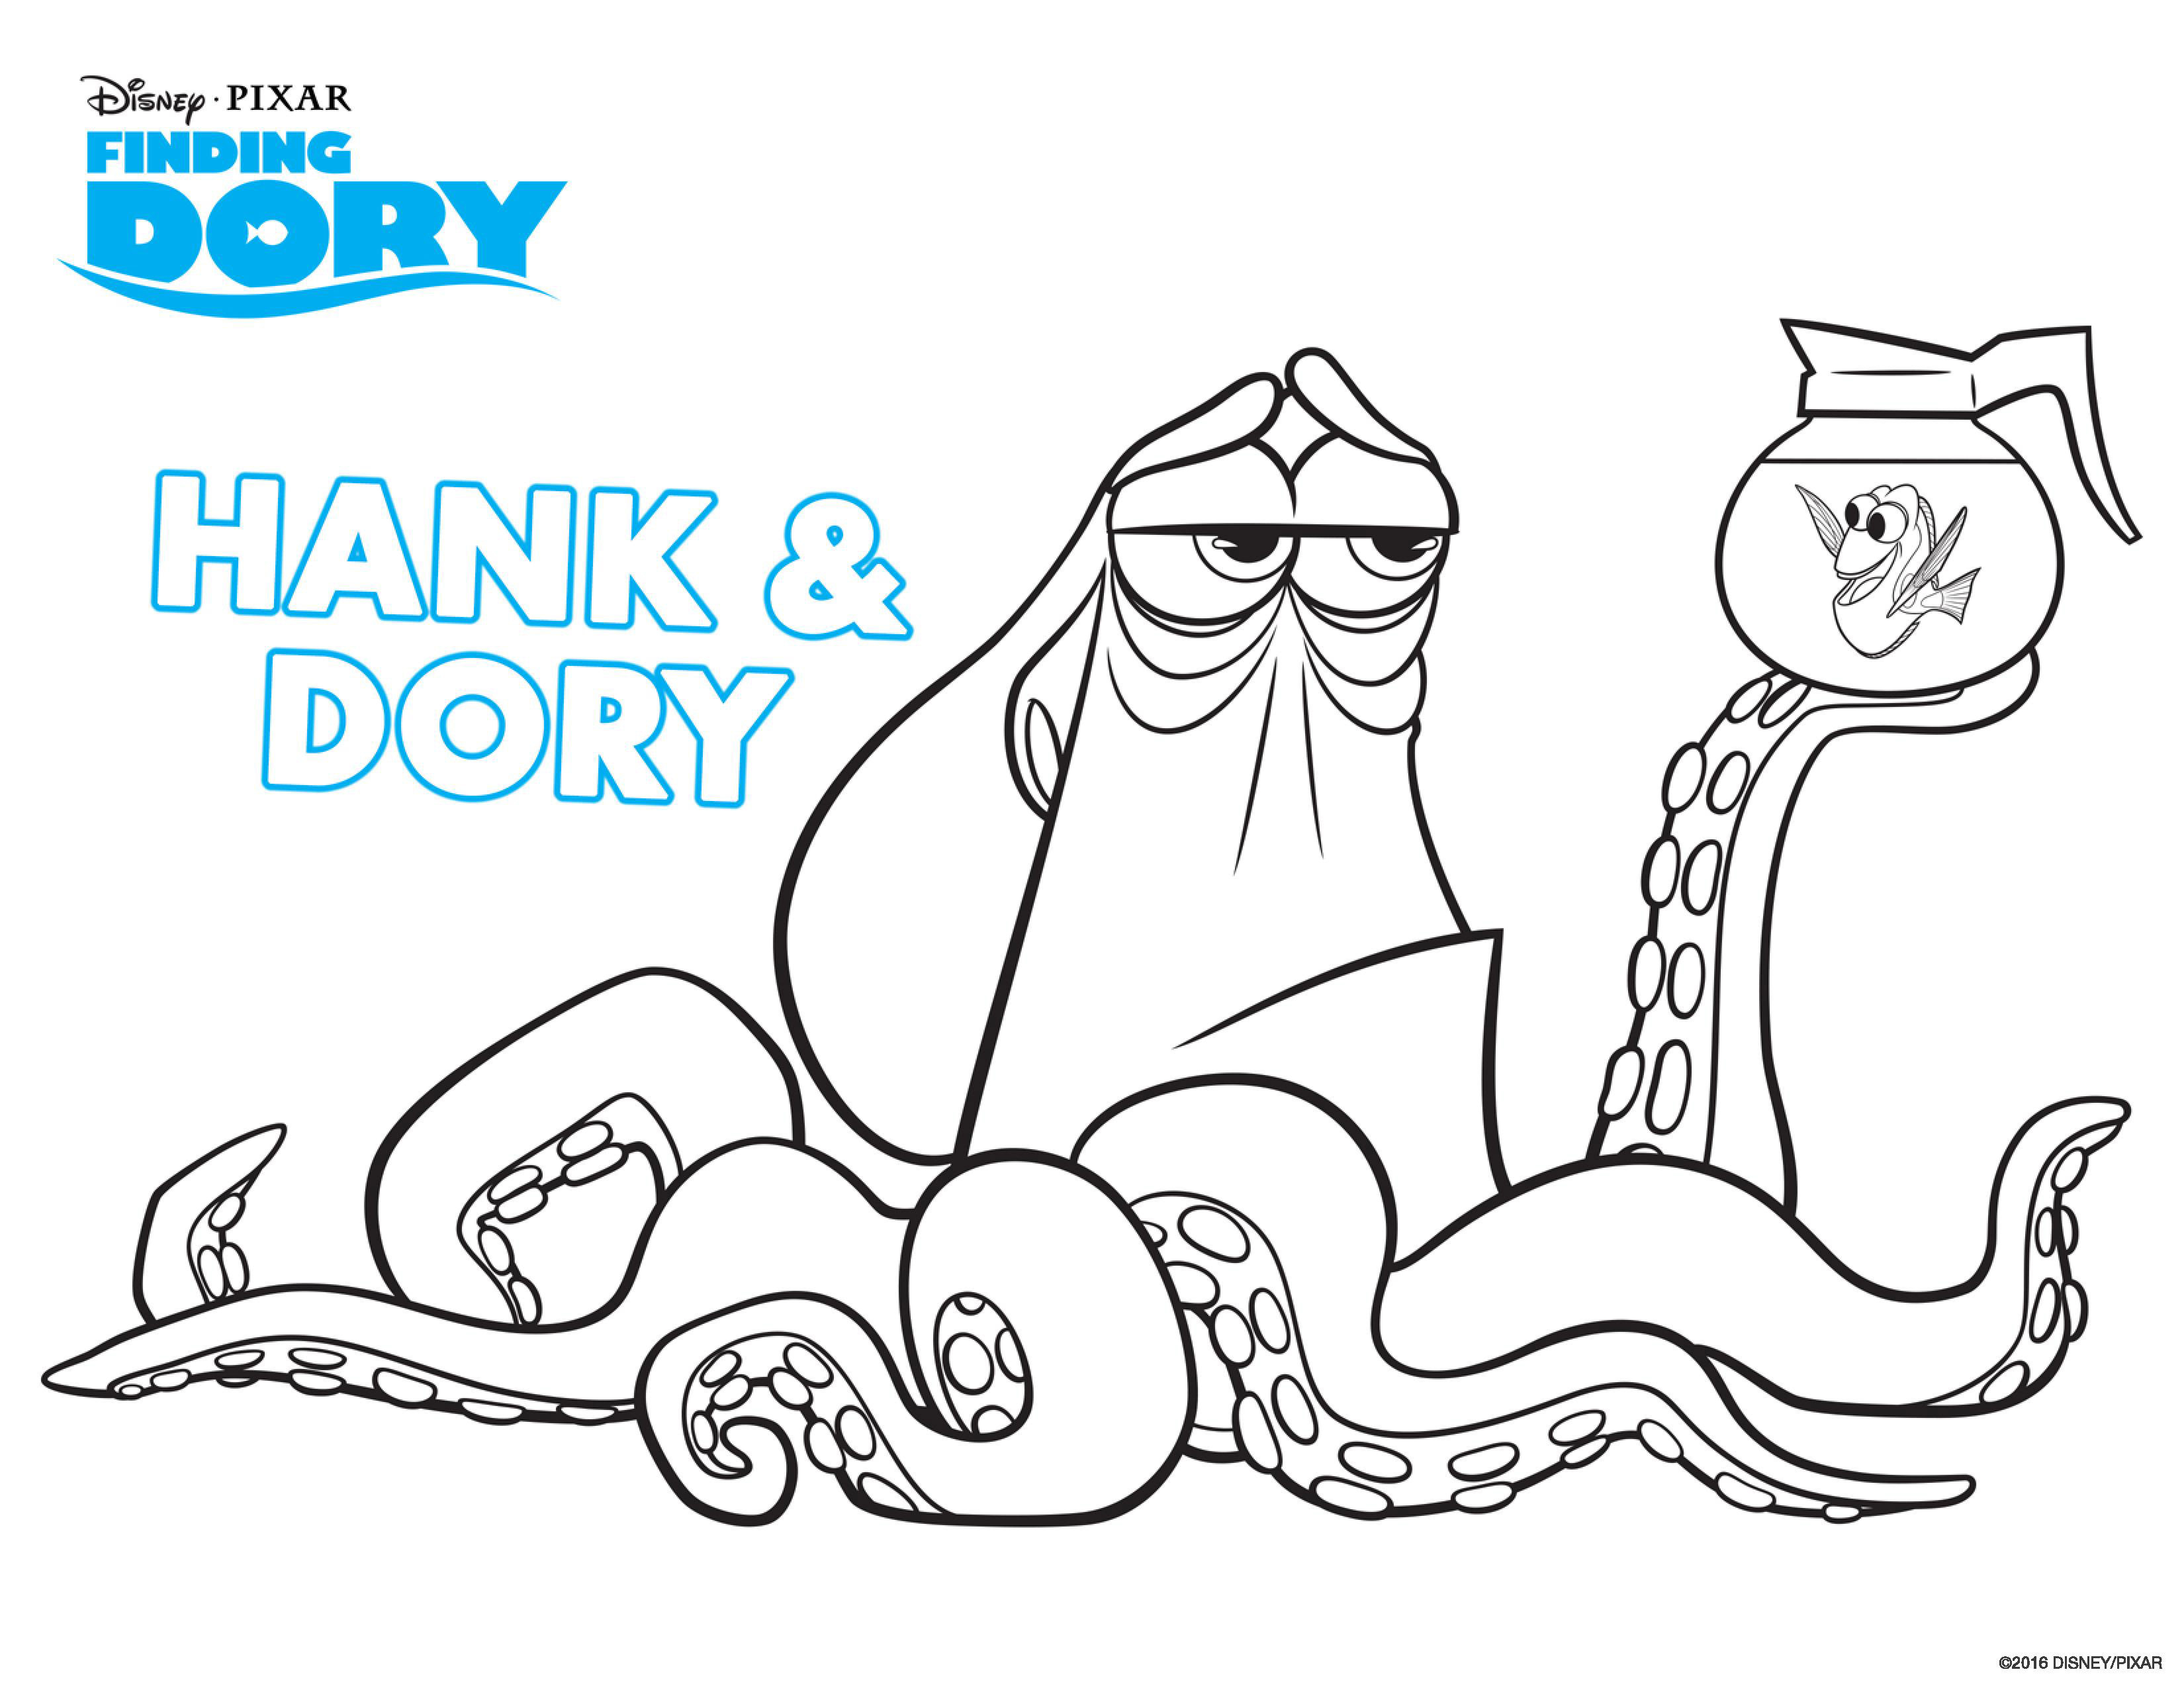 Finding Nemo Coloring Pages Finding Dory To Print Finding Dory Kids Coloring Pages